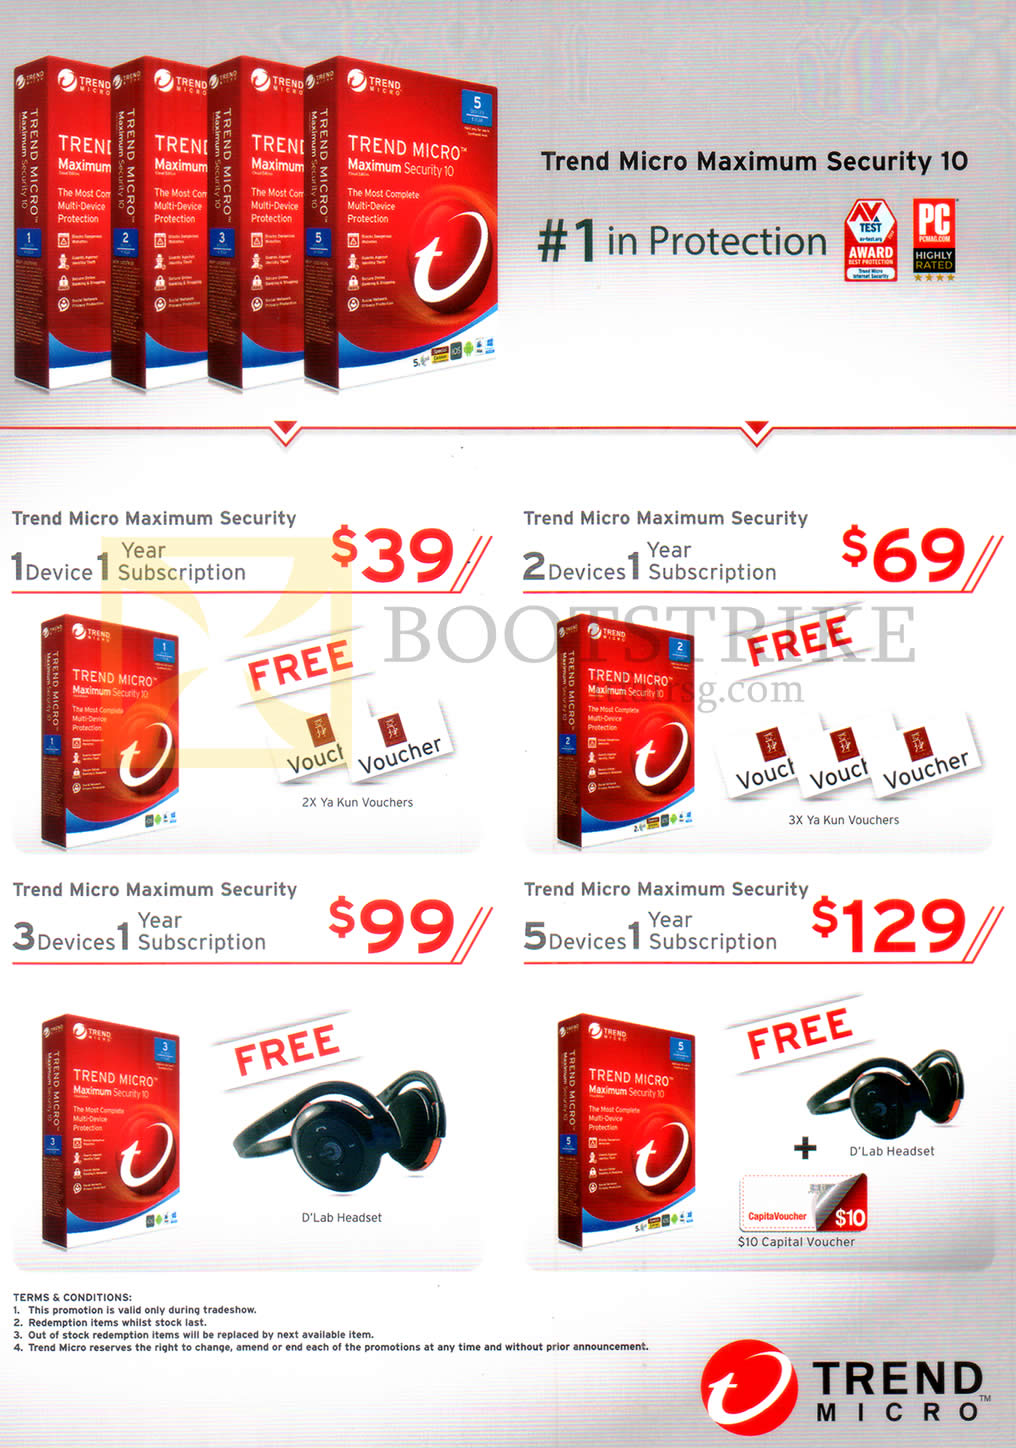 PC SHOW 2016 price list image brochure of Trend Micro Maximum Security 10 1, 2, 3, 5 Devices 1 Year Subscription